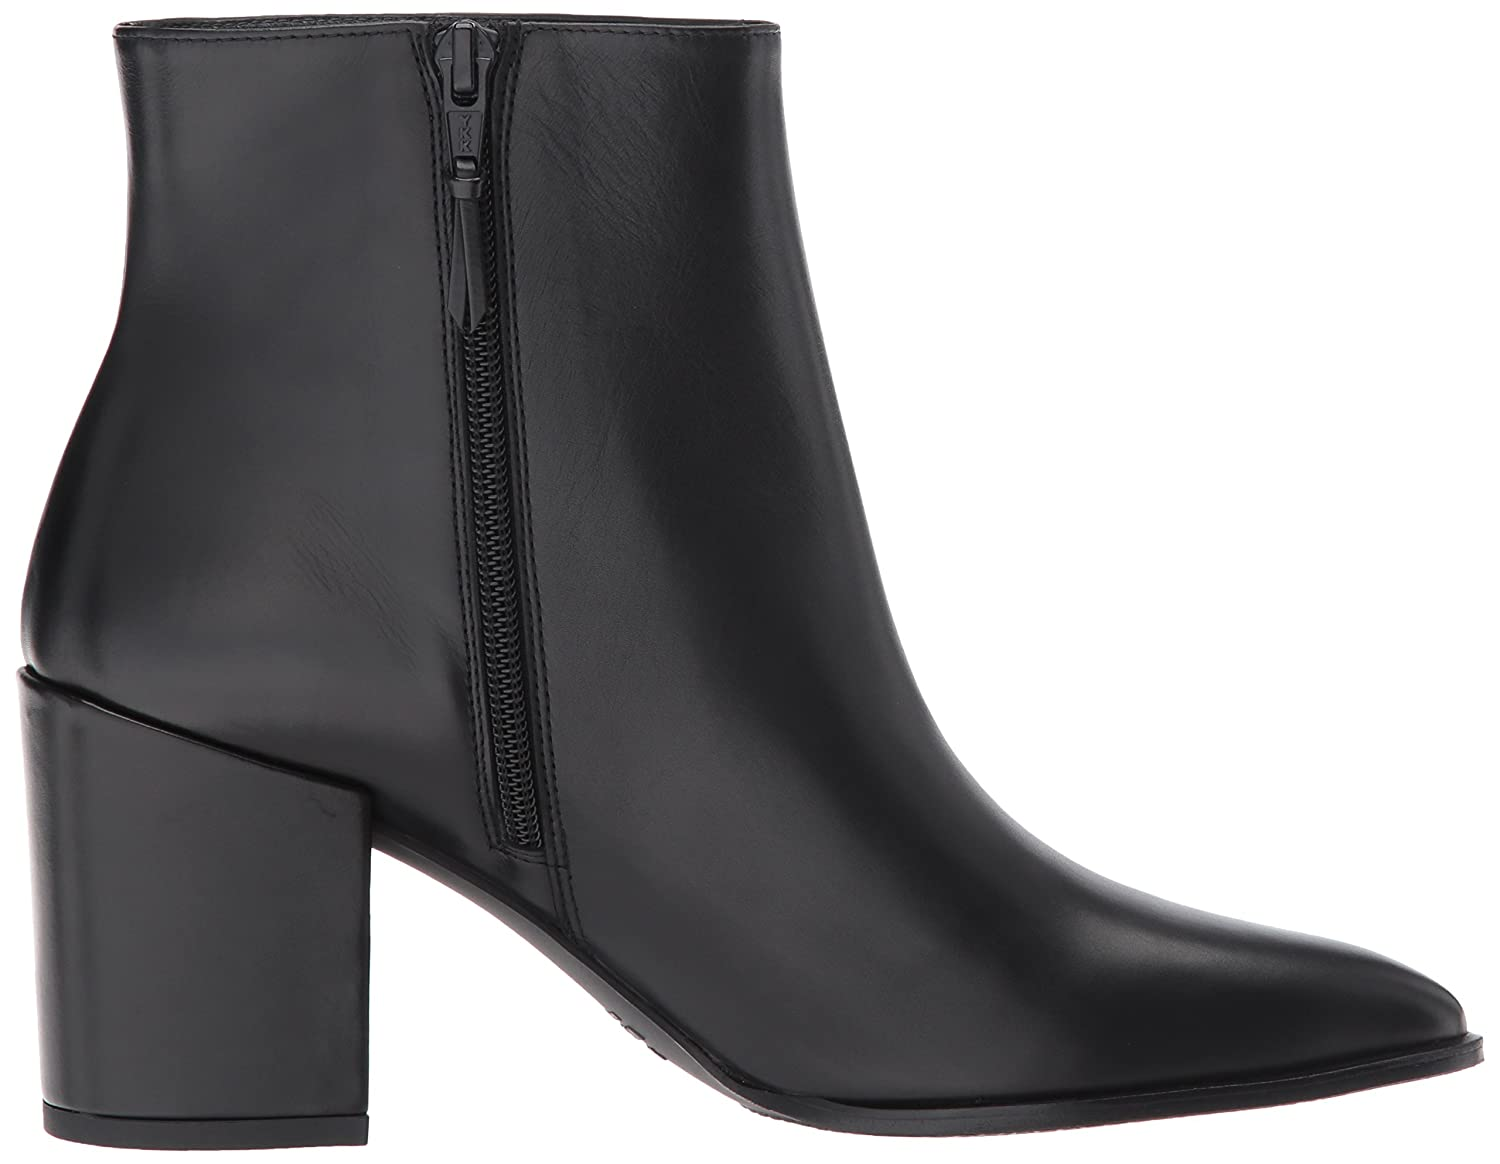 Stuart Weitzman Women's Trendy Ankle Boot B01N1S2CKS 7 B(M) US|Black